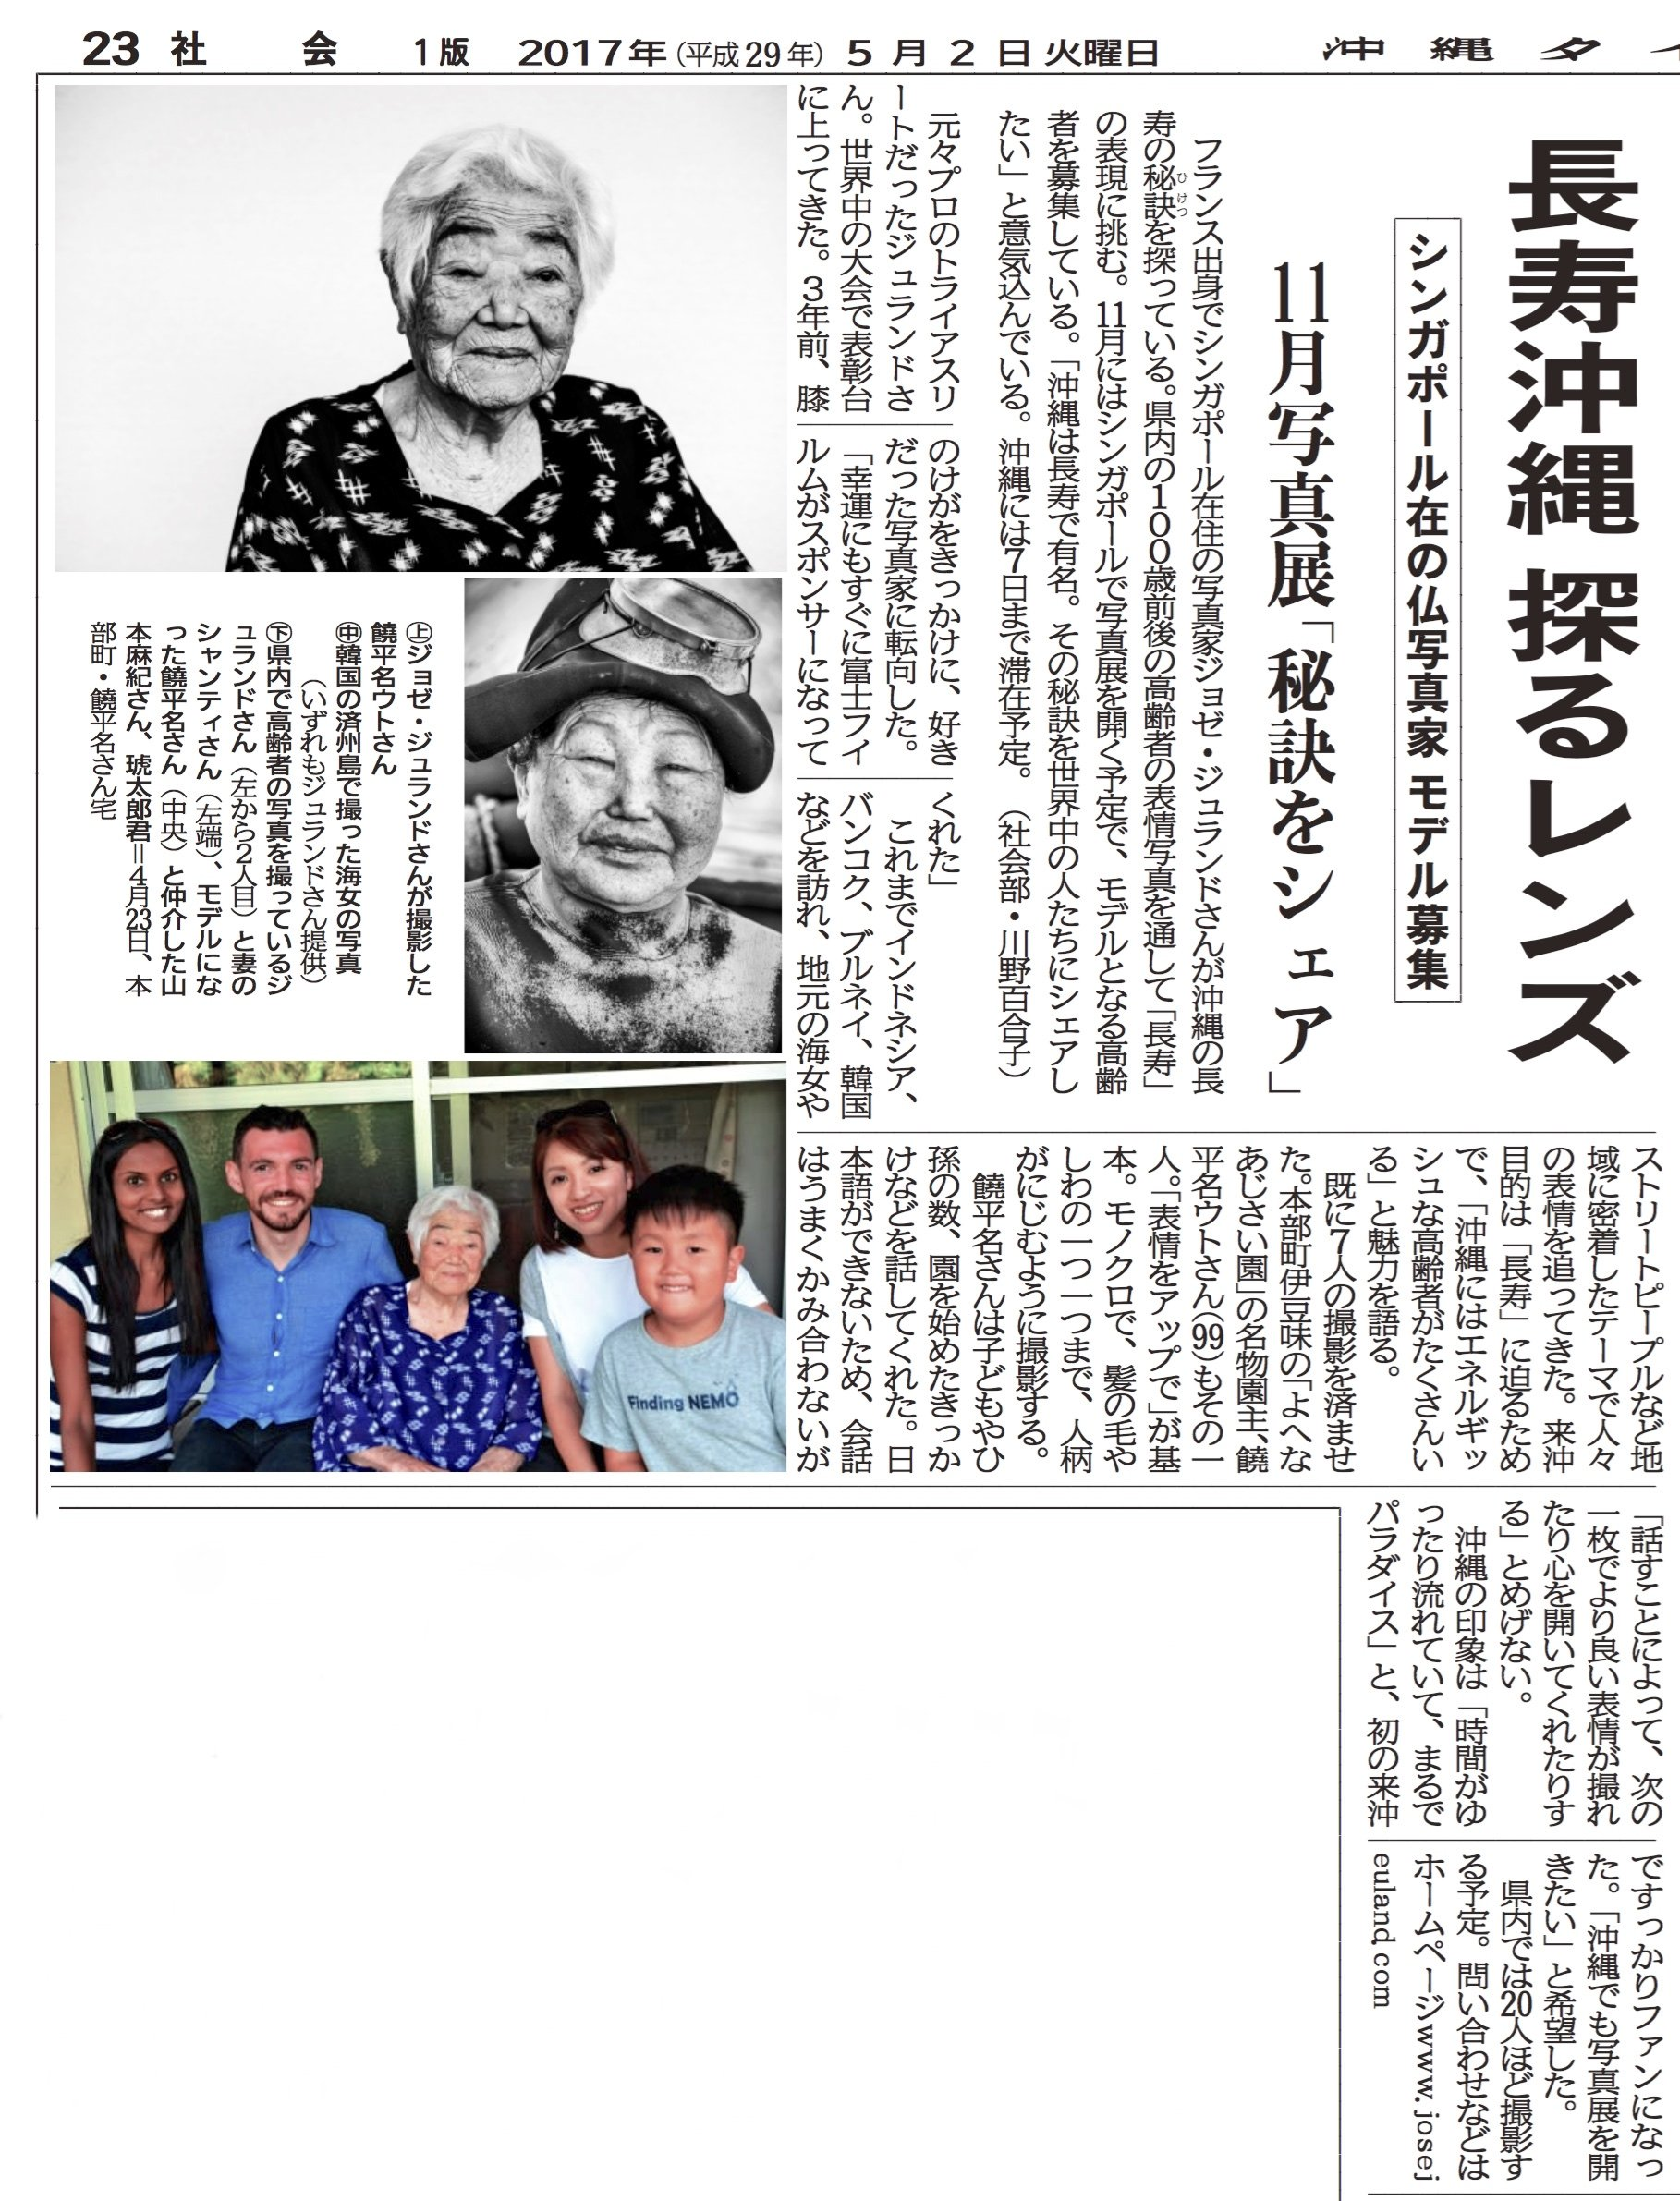 Okinawa Times - Jose Jeuland Newspaper - Japan Photography Proje